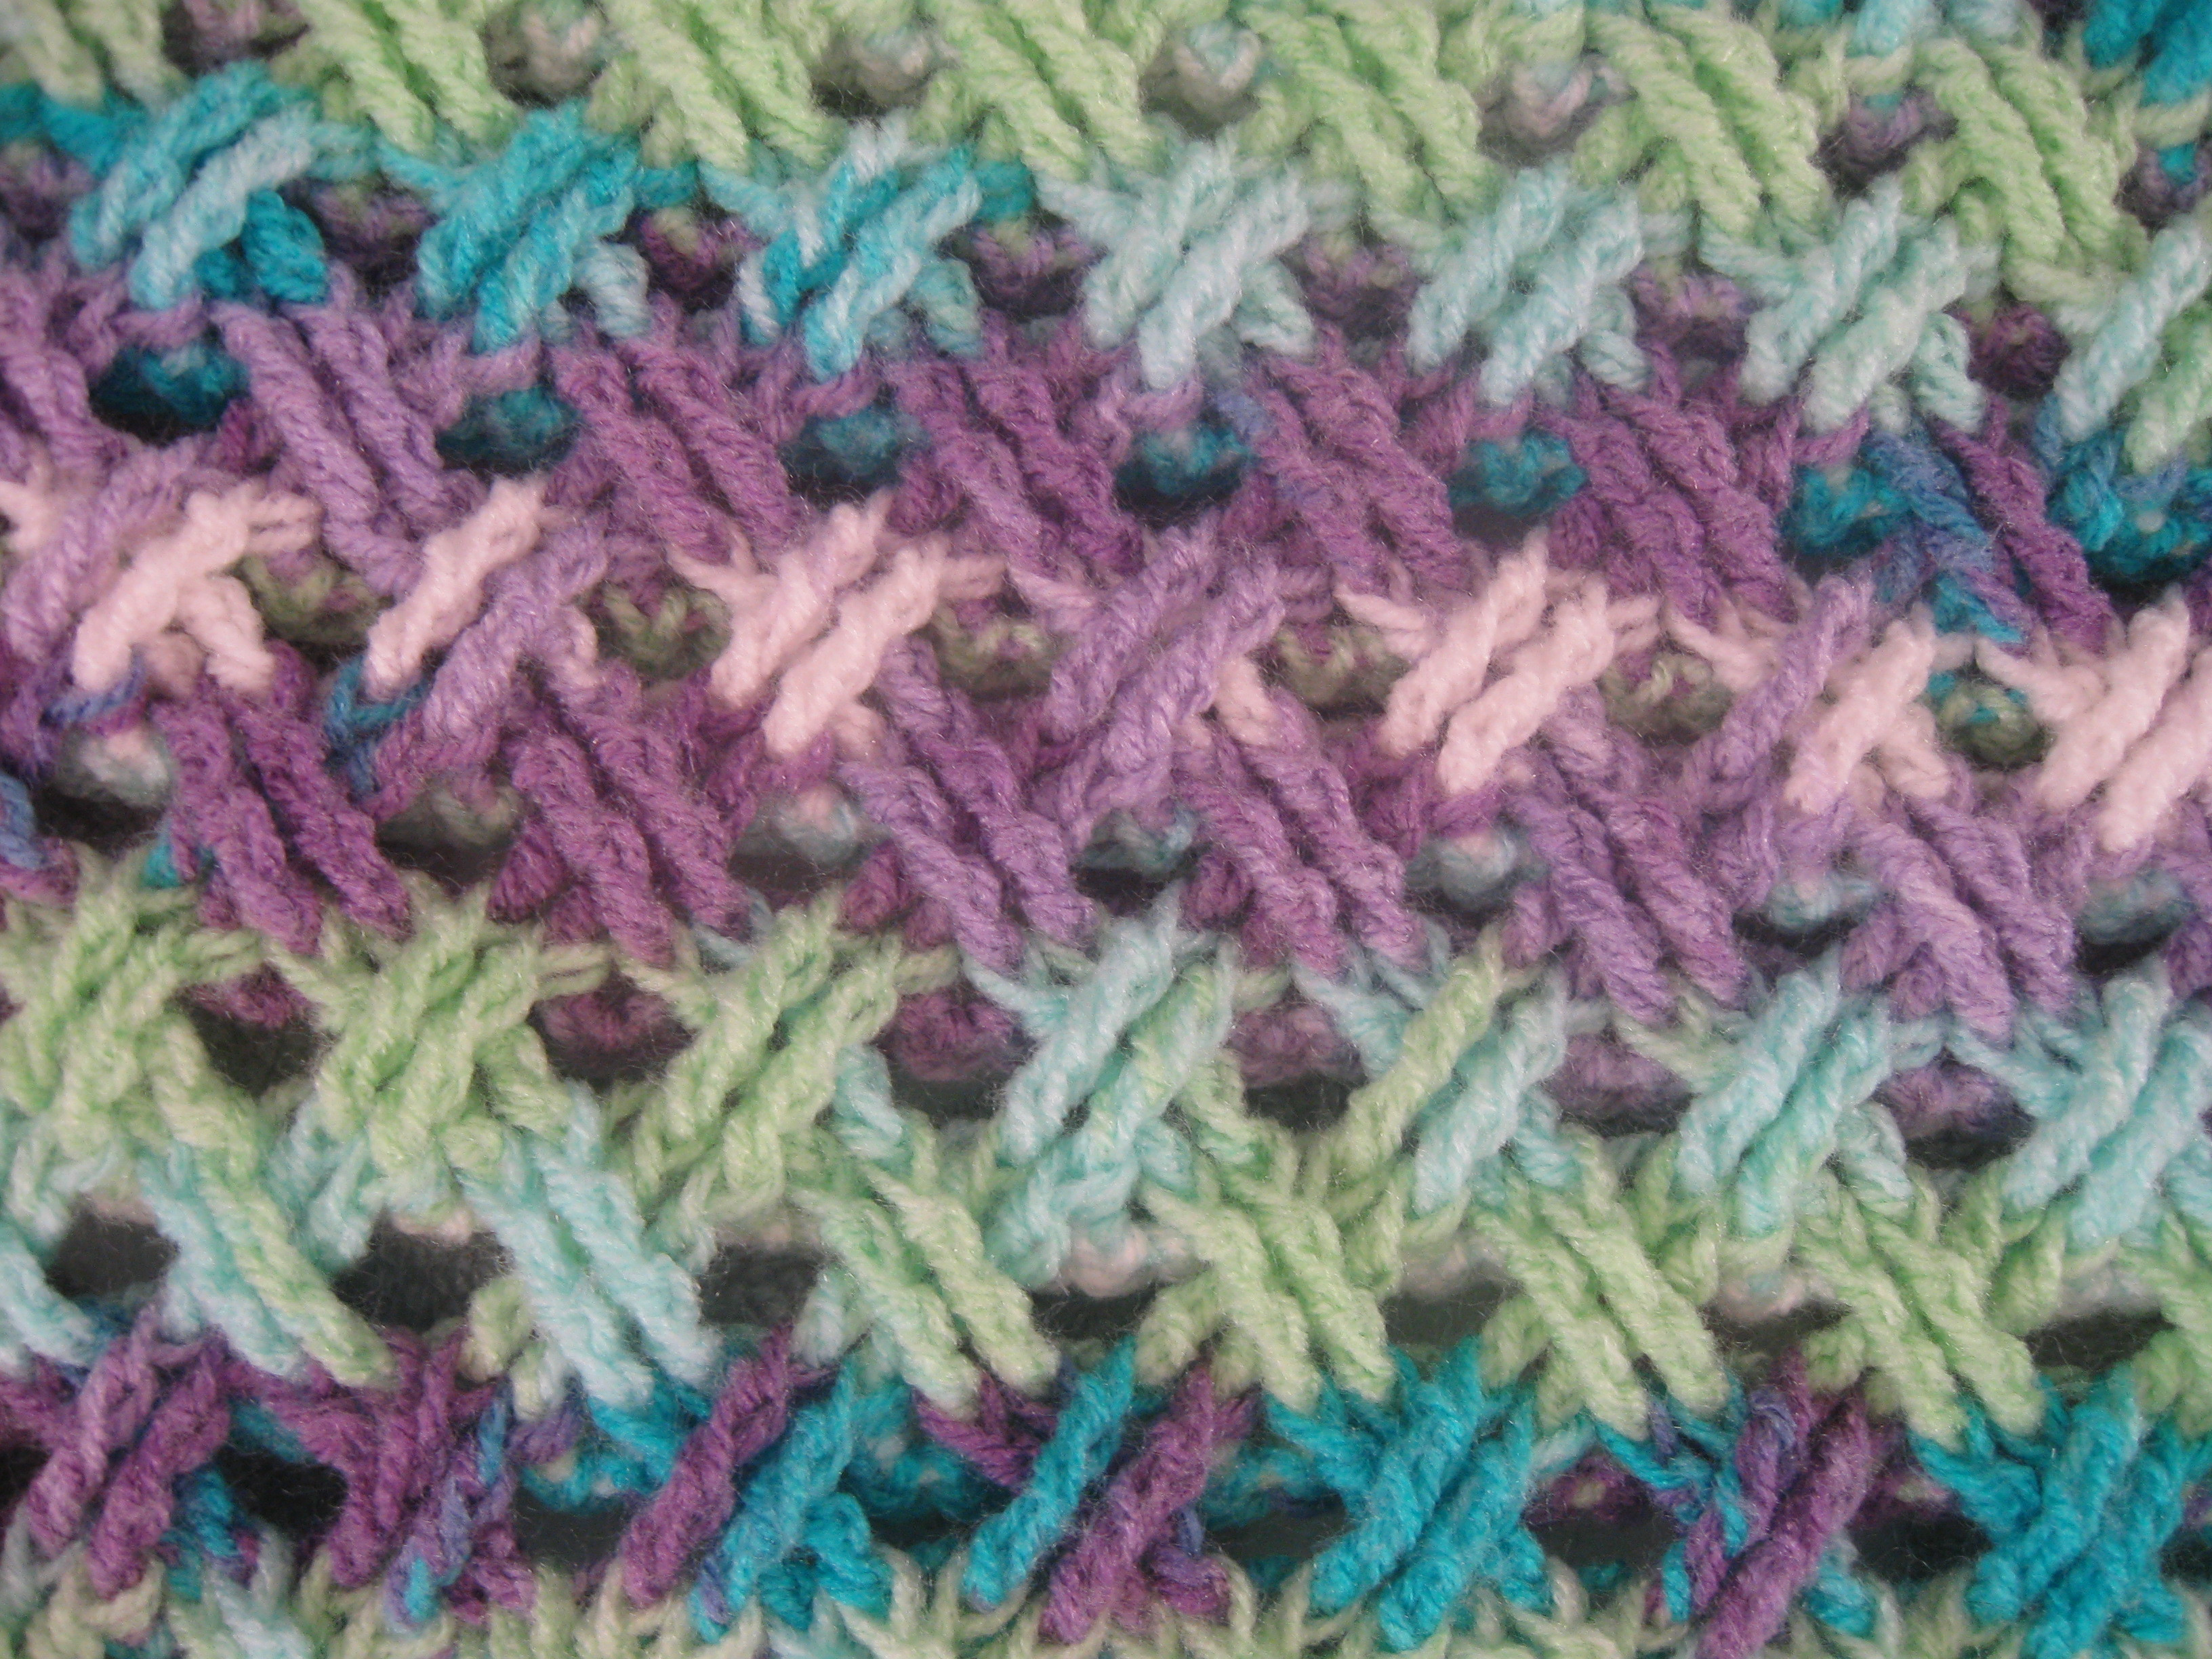 Crochet Stitch Patterns Best Of Meladora S Creations – Interweave Cable Celtic Weave Of Marvelous 44 Photos Crochet Stitch Patterns